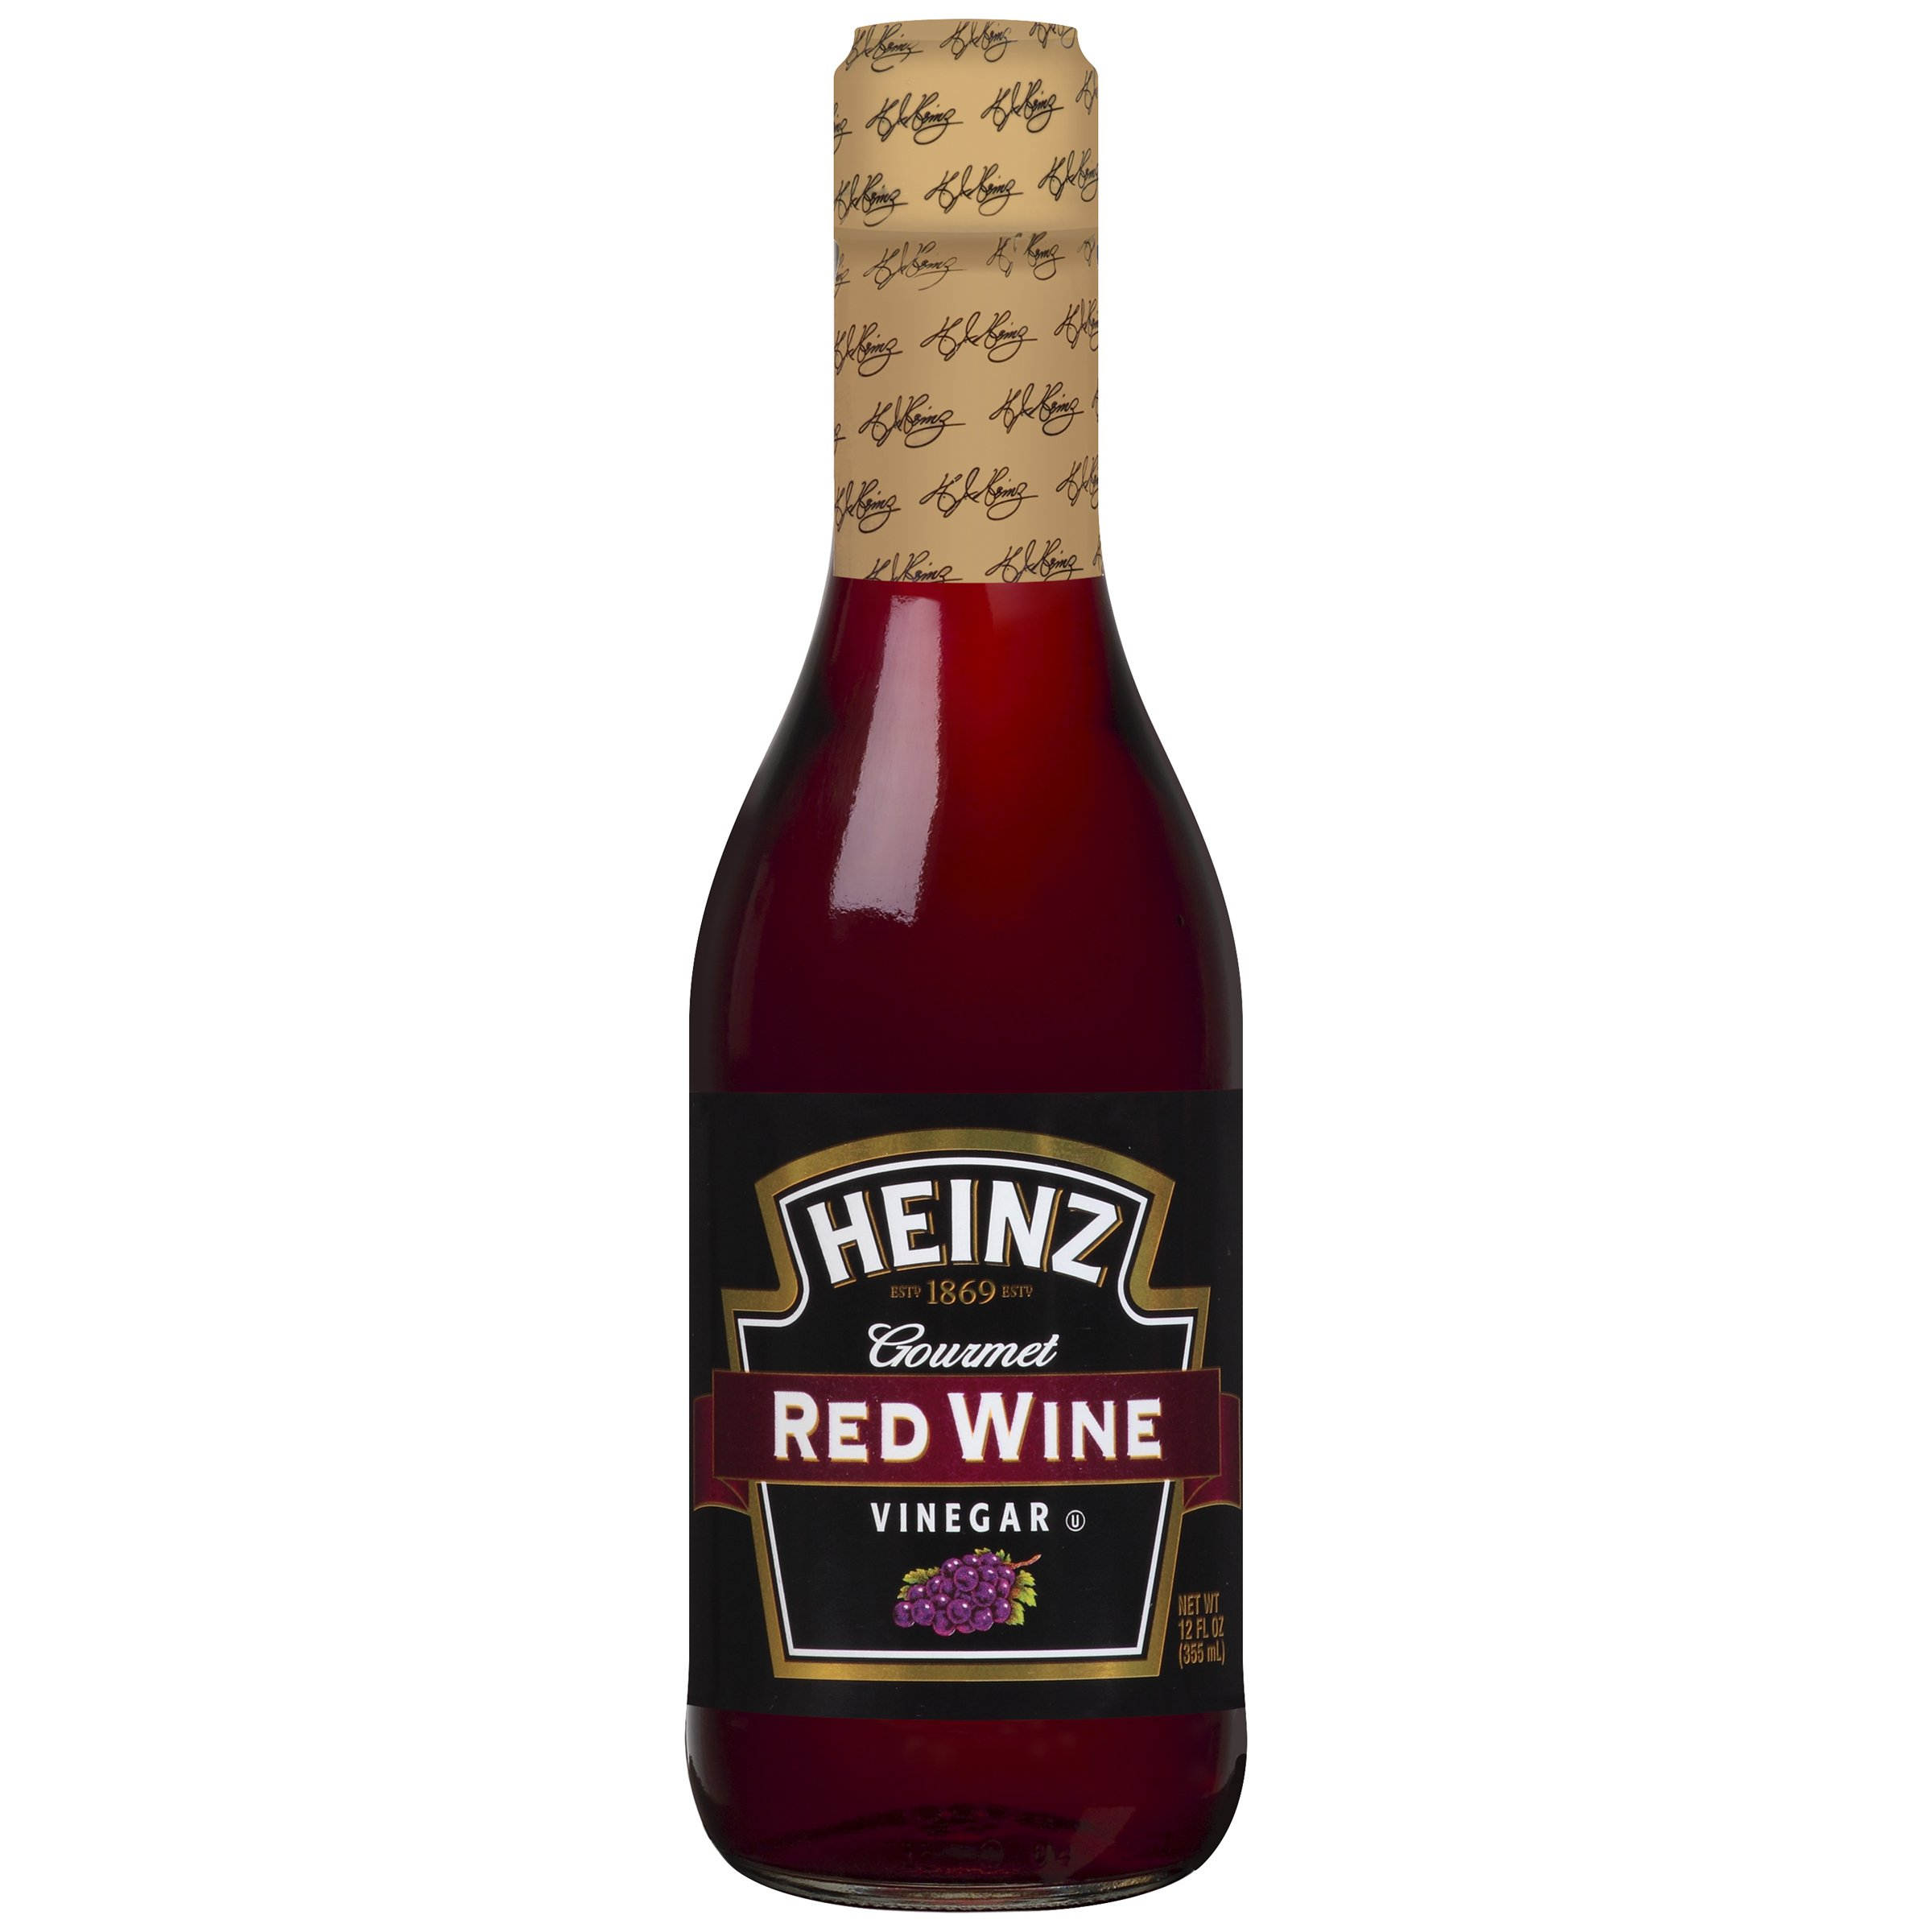 Heinz Red Wine Vinegar (12 oz Bottles, Pack of 12) by Heinz